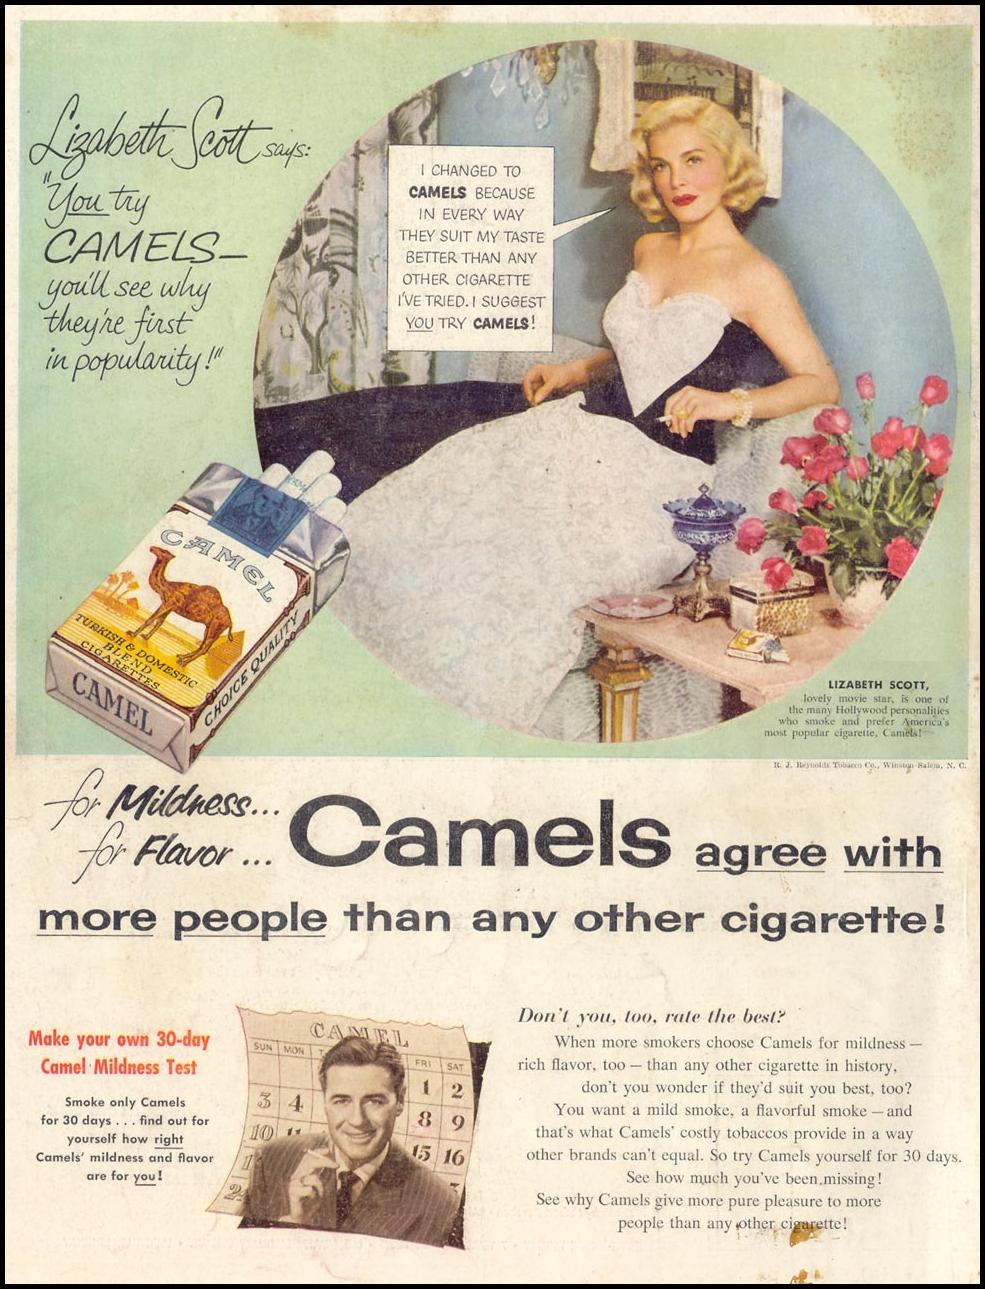 CAMEL CIGARETTES LIFE 11/30/1953 BACK COVER